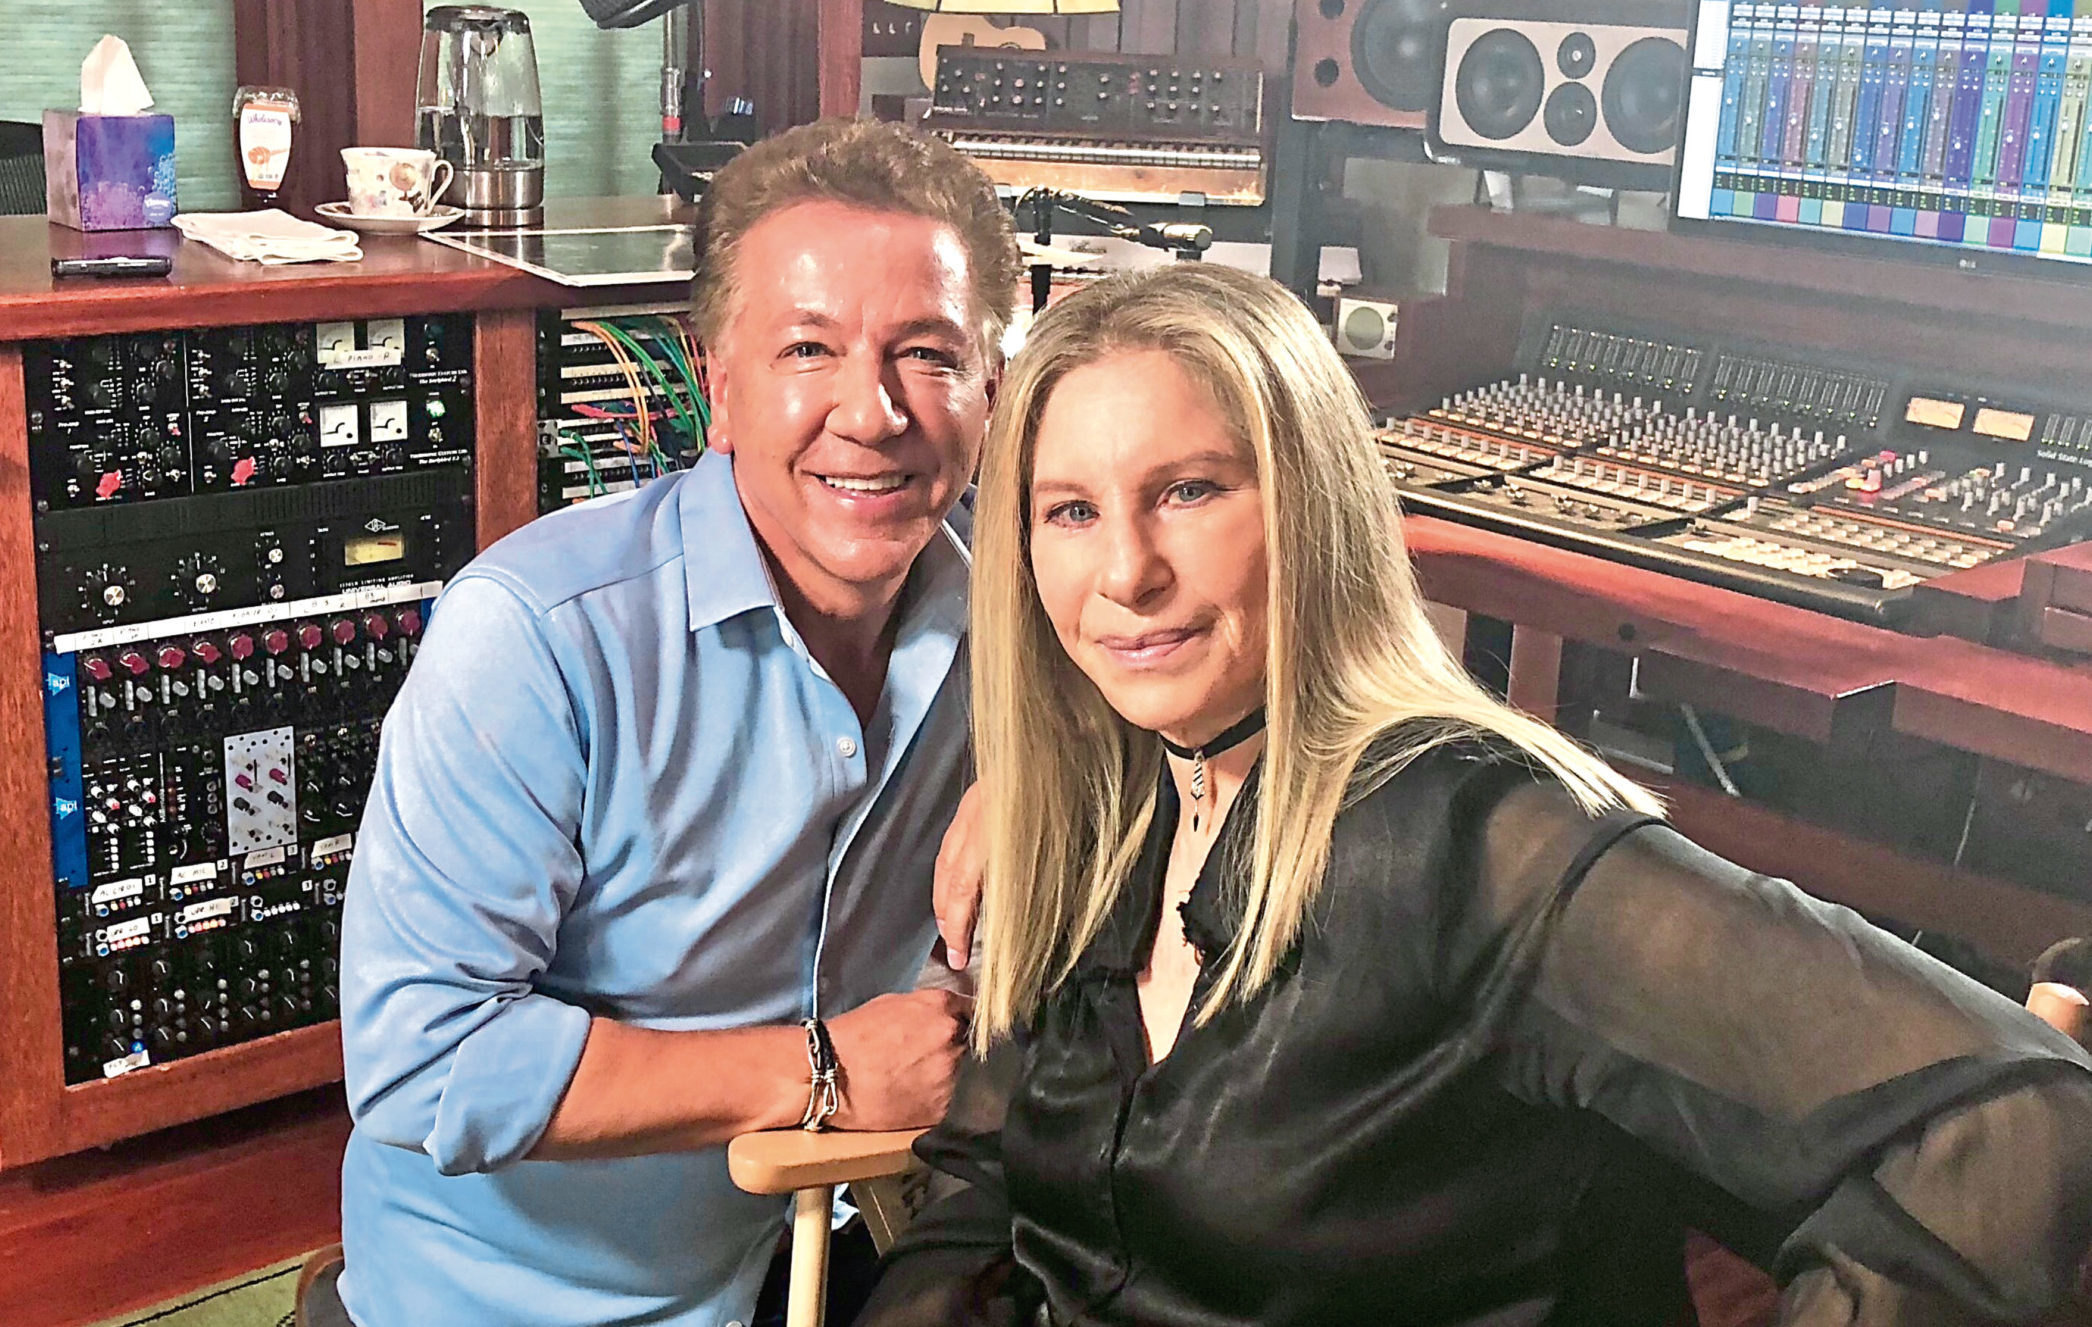 Barbra Streisand, pictured with Ross in LA, is a vociferous critic of Donald Trump.